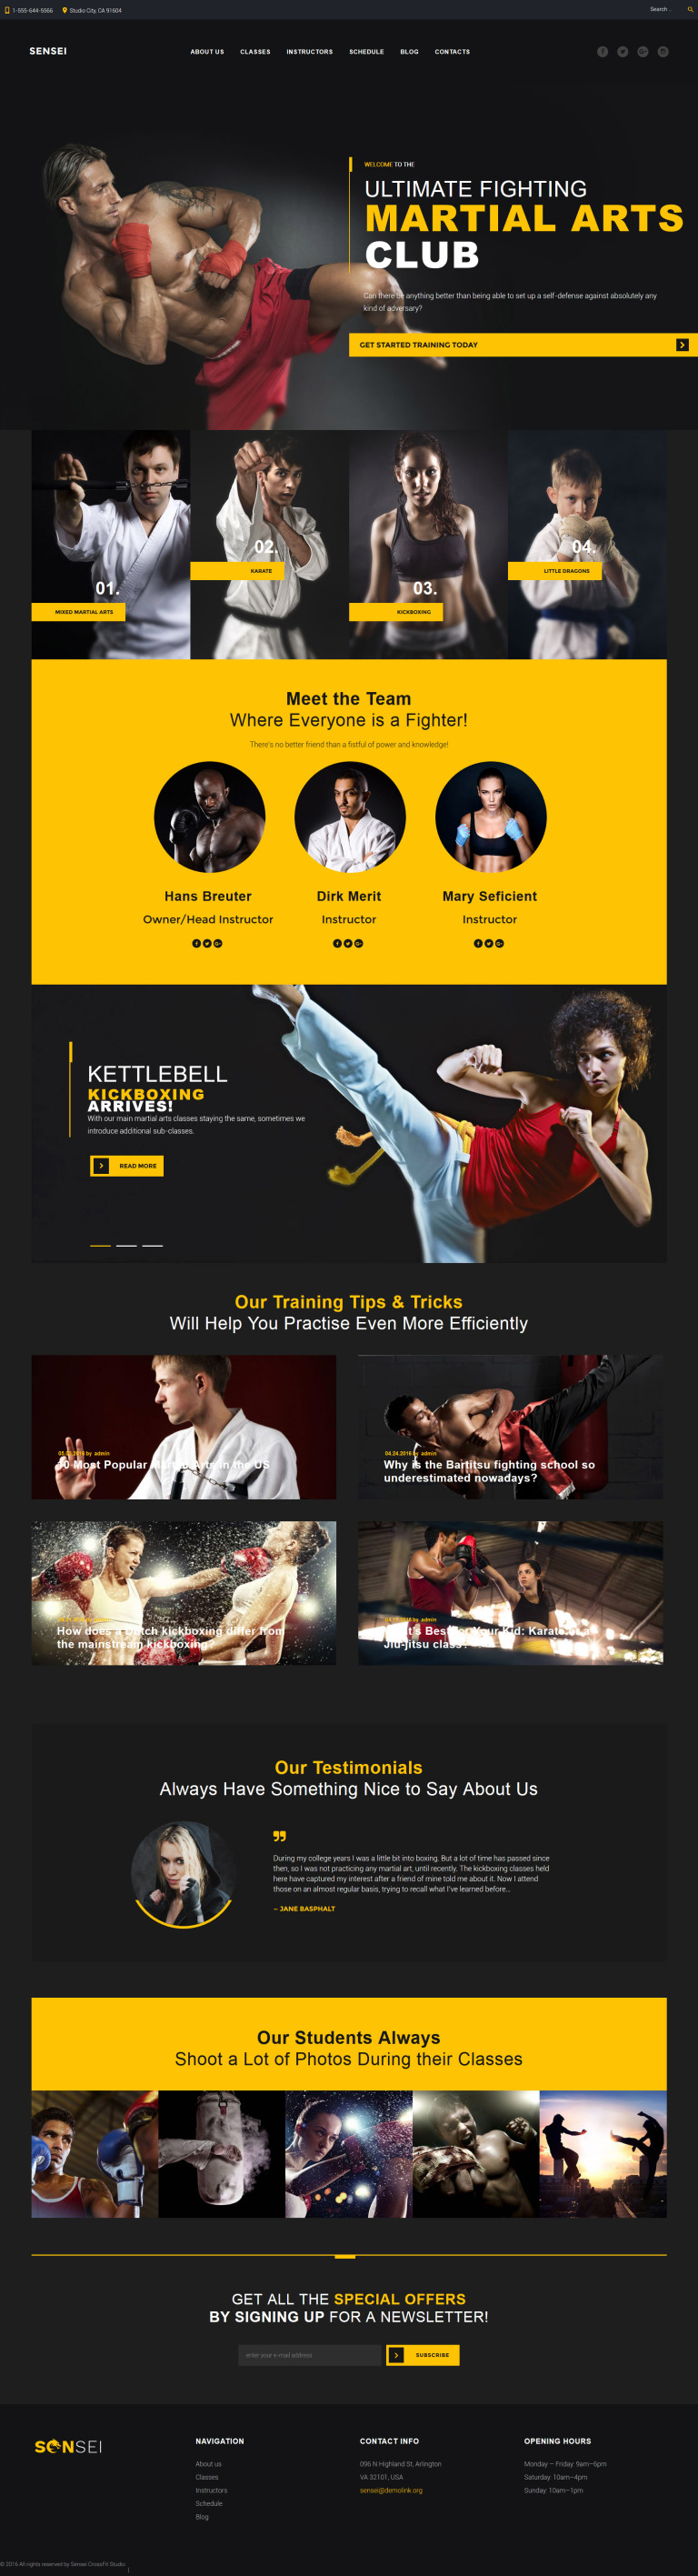 Sensei - Martial Arts WordPress Theme New Screenshots BIG